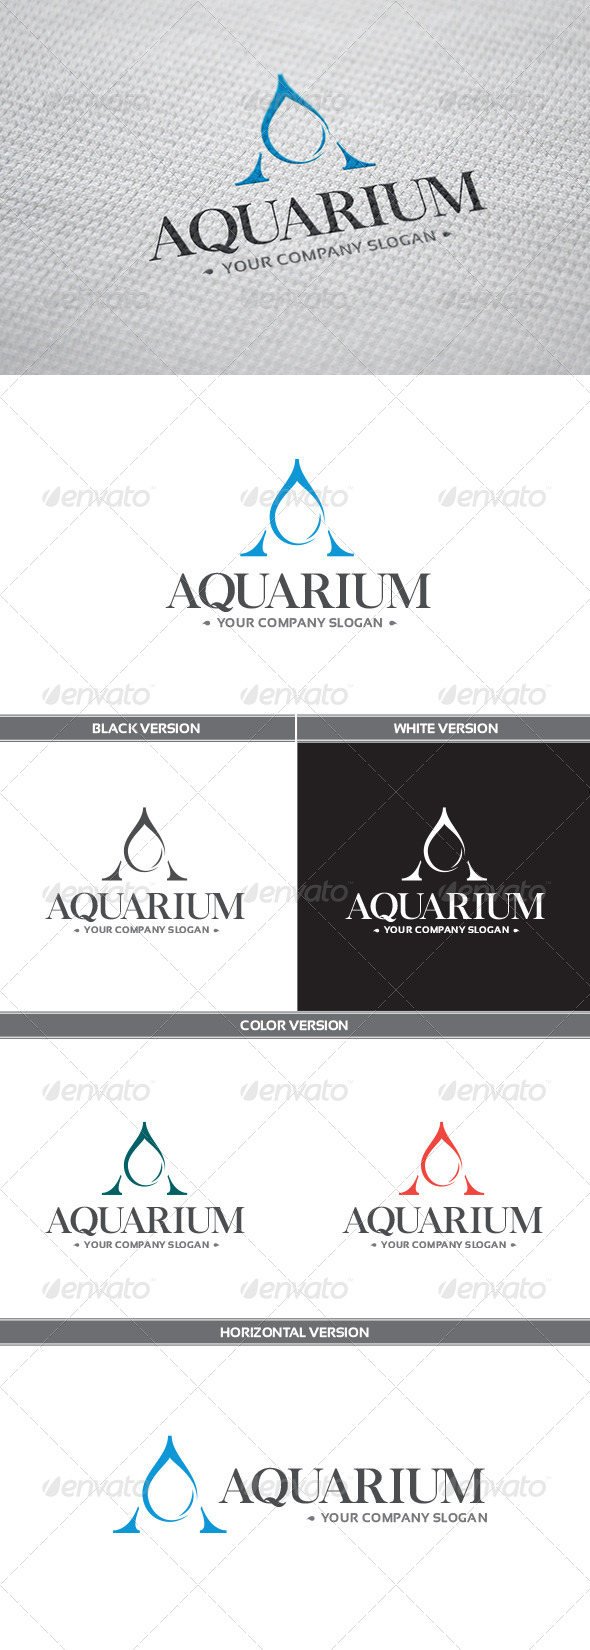 GraphicRiver Aquarium Logo 8423189